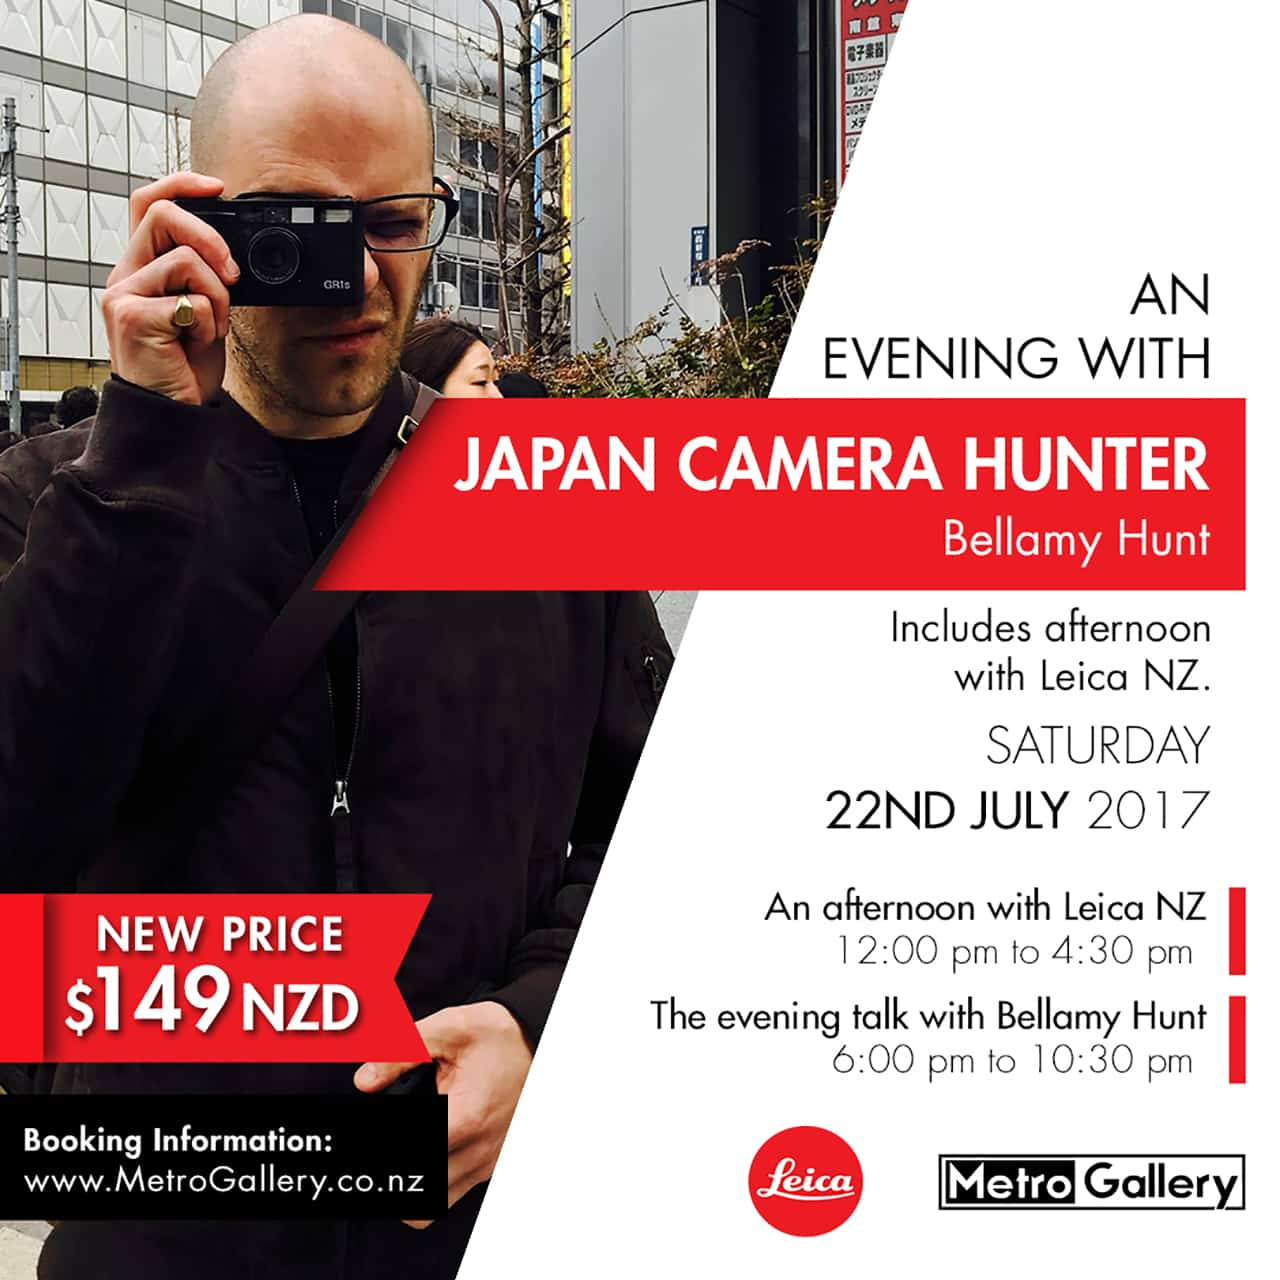 JCH is coming to NZ!